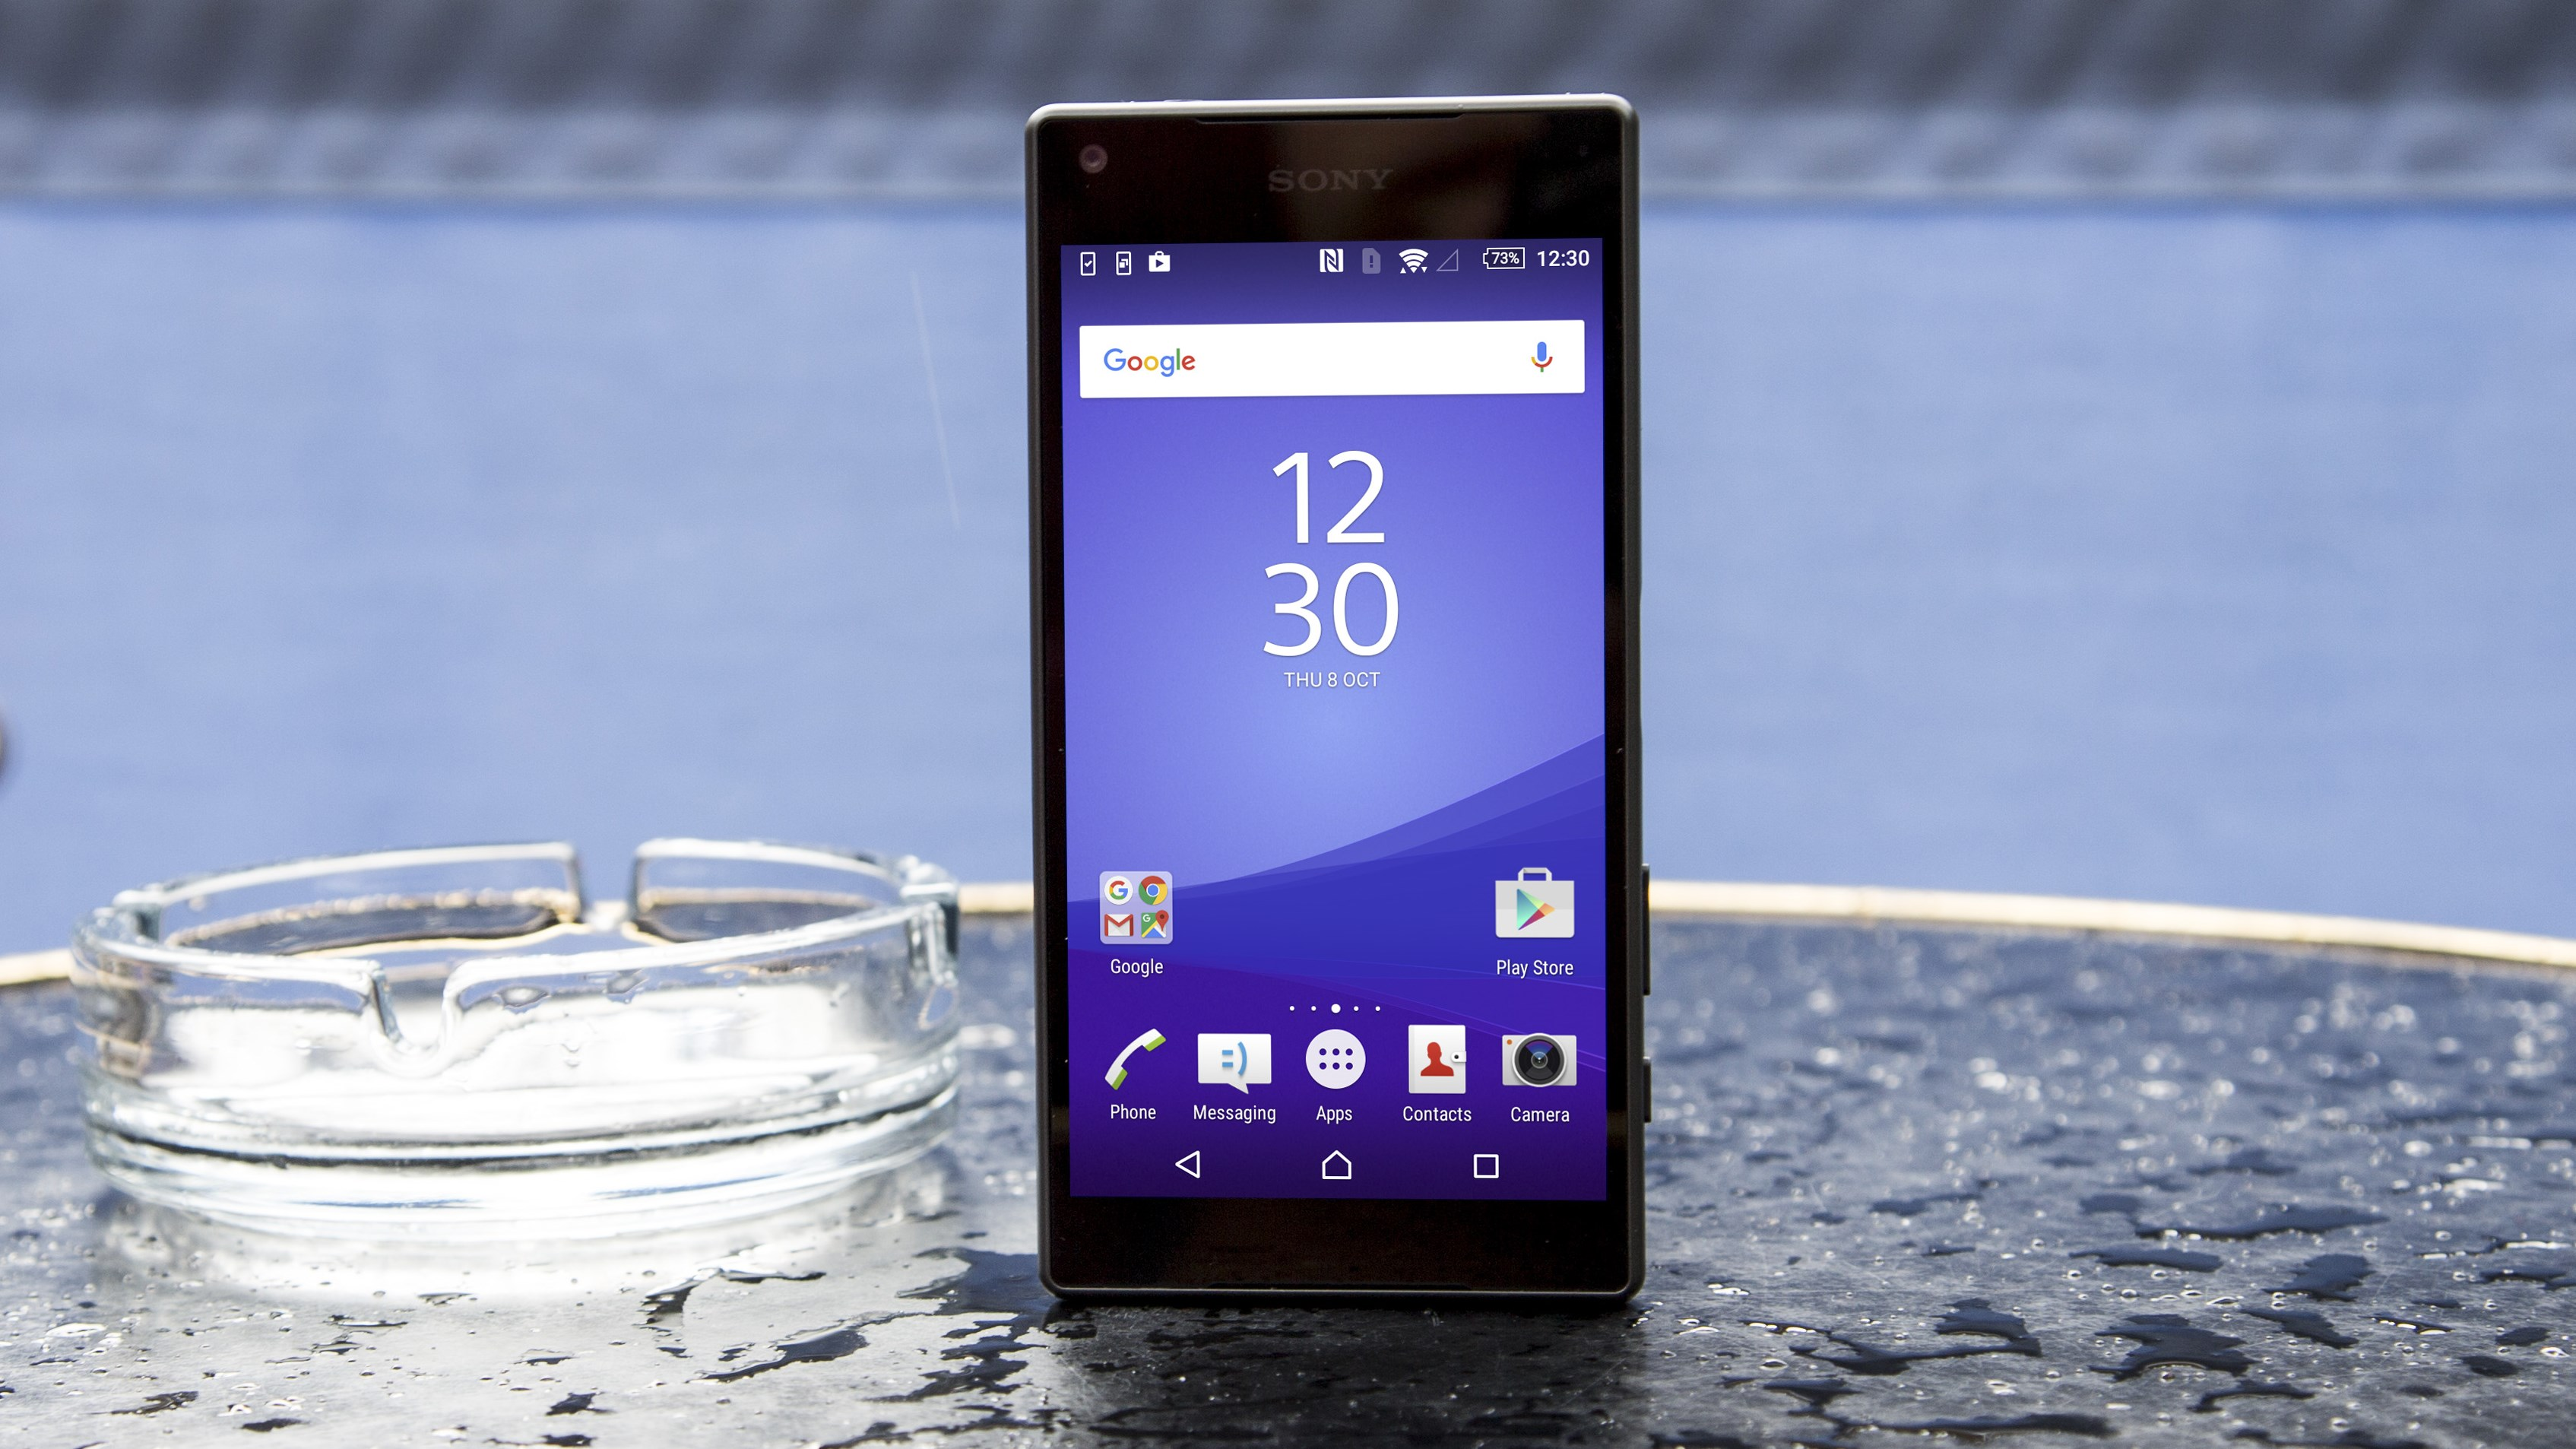 Sony Xperia Z5 Compact review: One year on | Expert Reviews